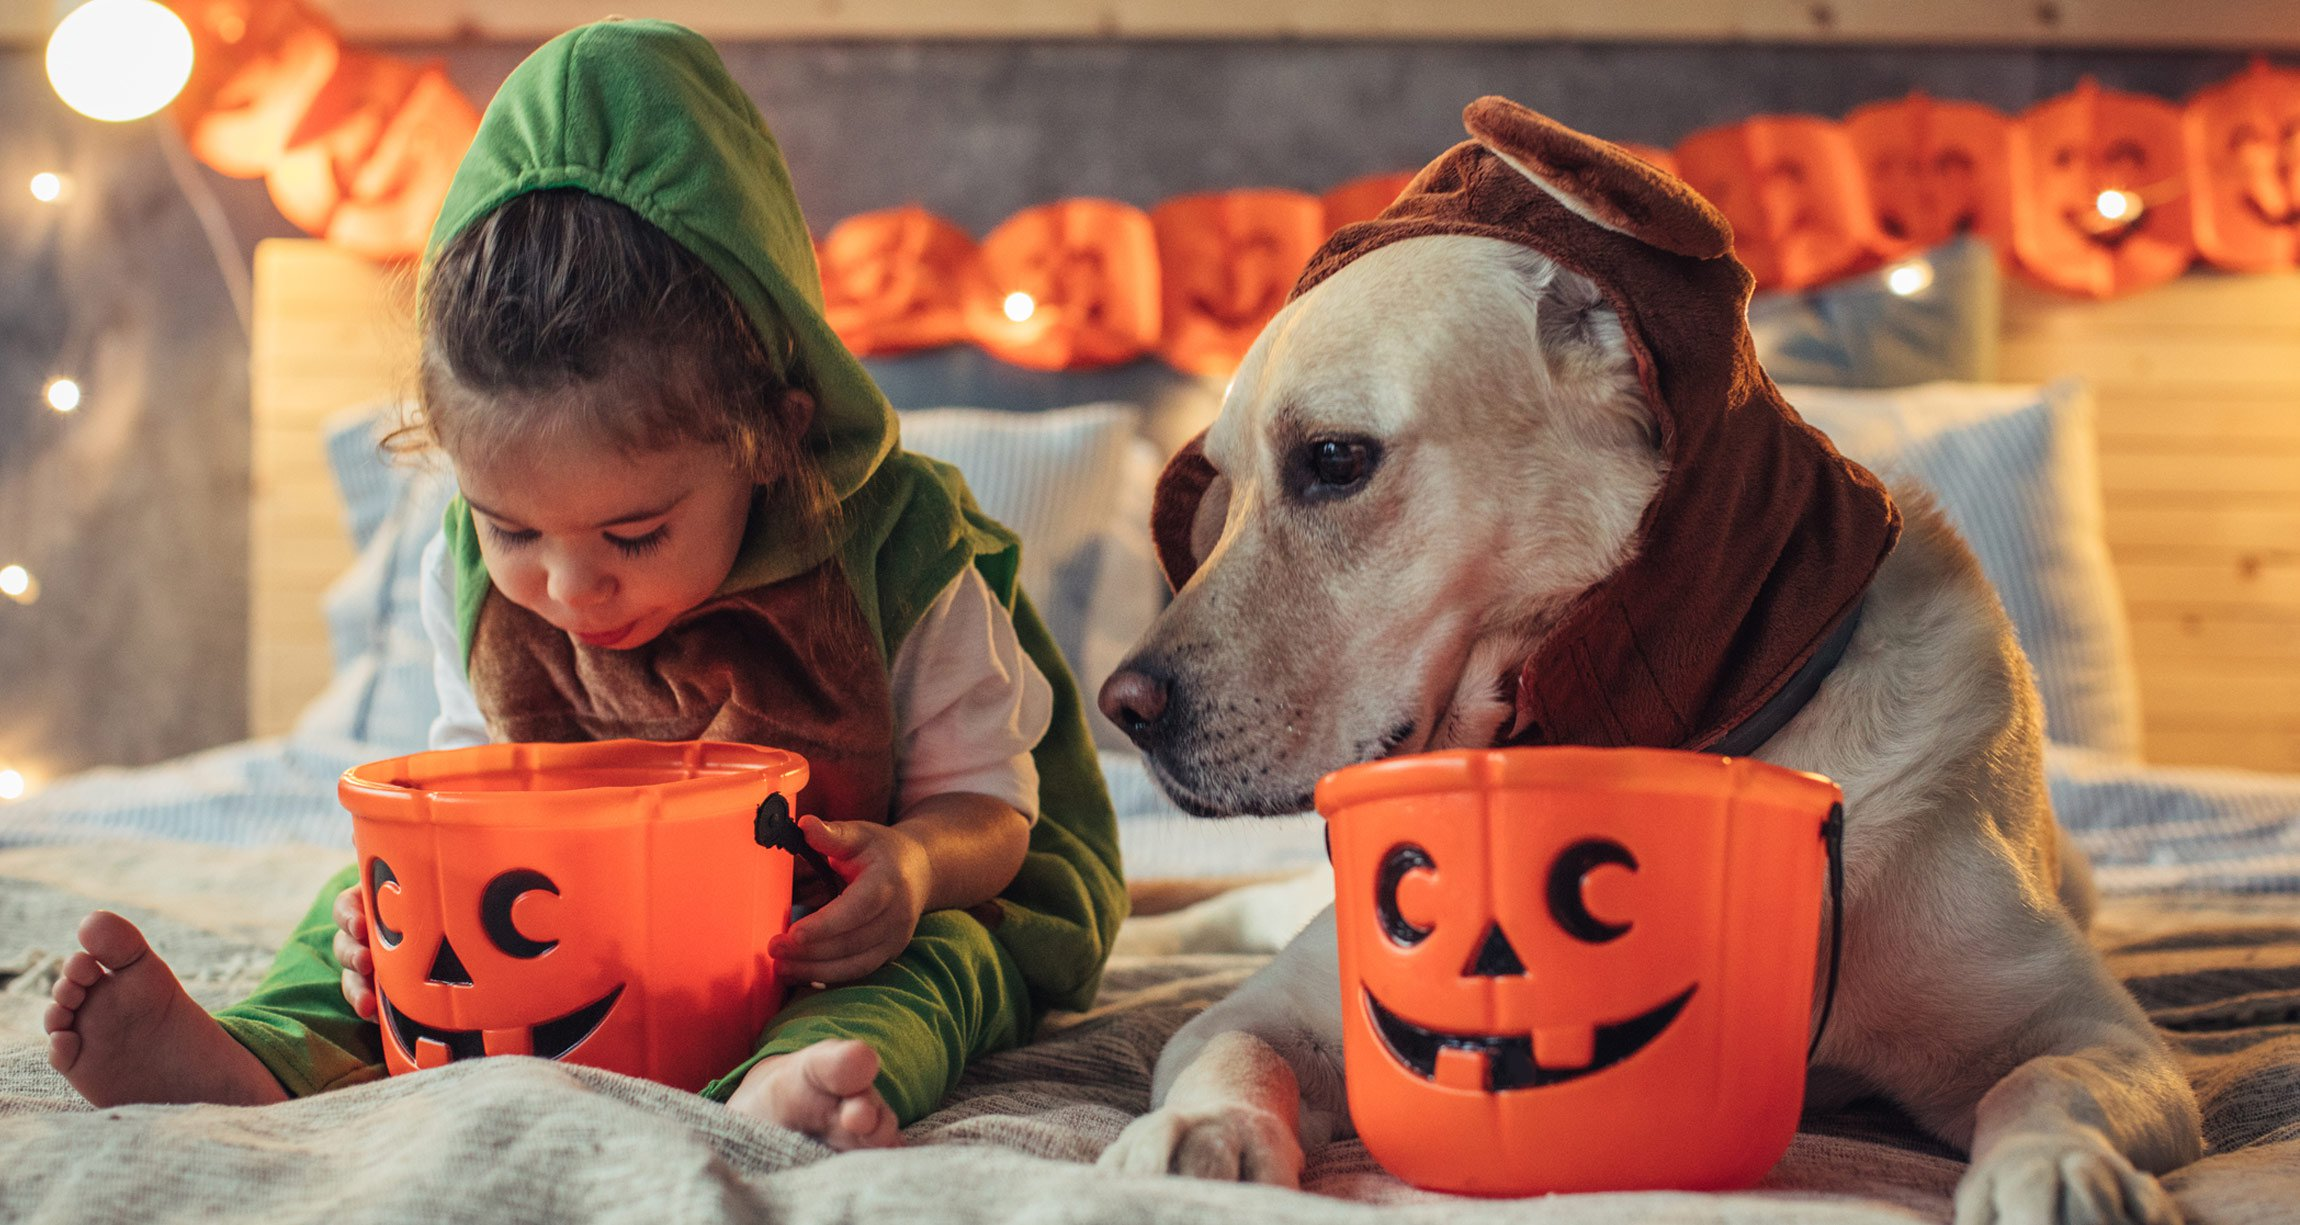 Girl and dog in costumes with jack-o-lantern buckets